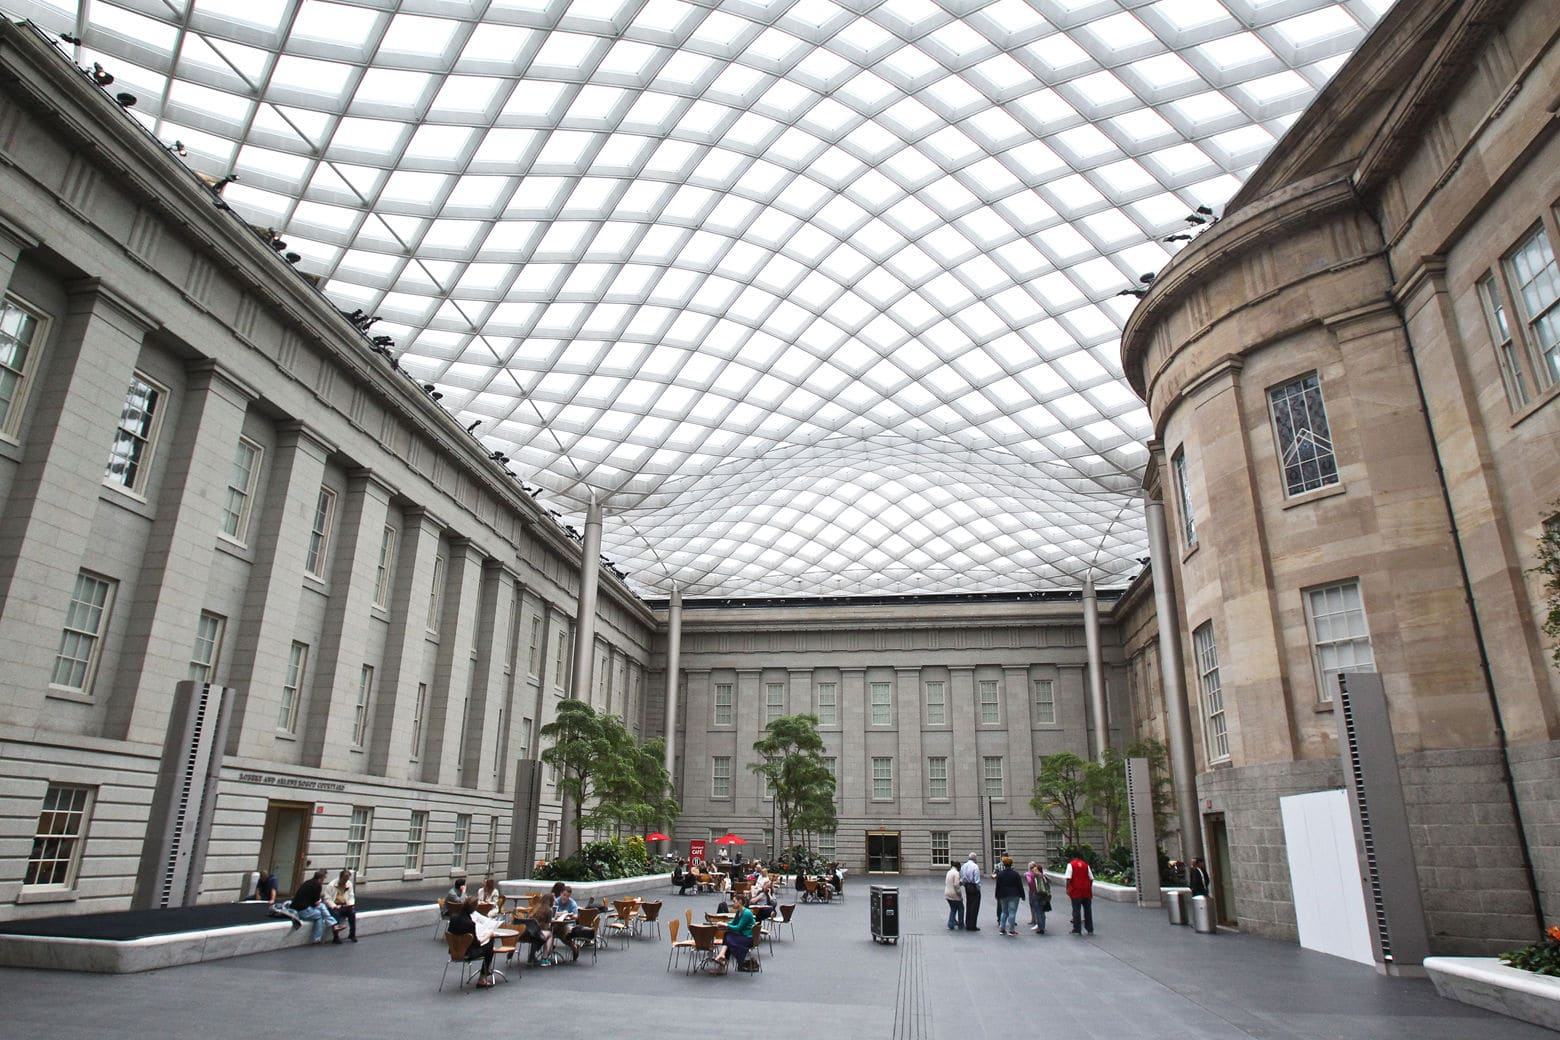 The Robert and Arlene Kogod Courtyard at the National Portrait Gallery, one of 18 Smithsonian Institutions in D.C. (Courtesy of the Smithsonian's National Portrait Gallery)